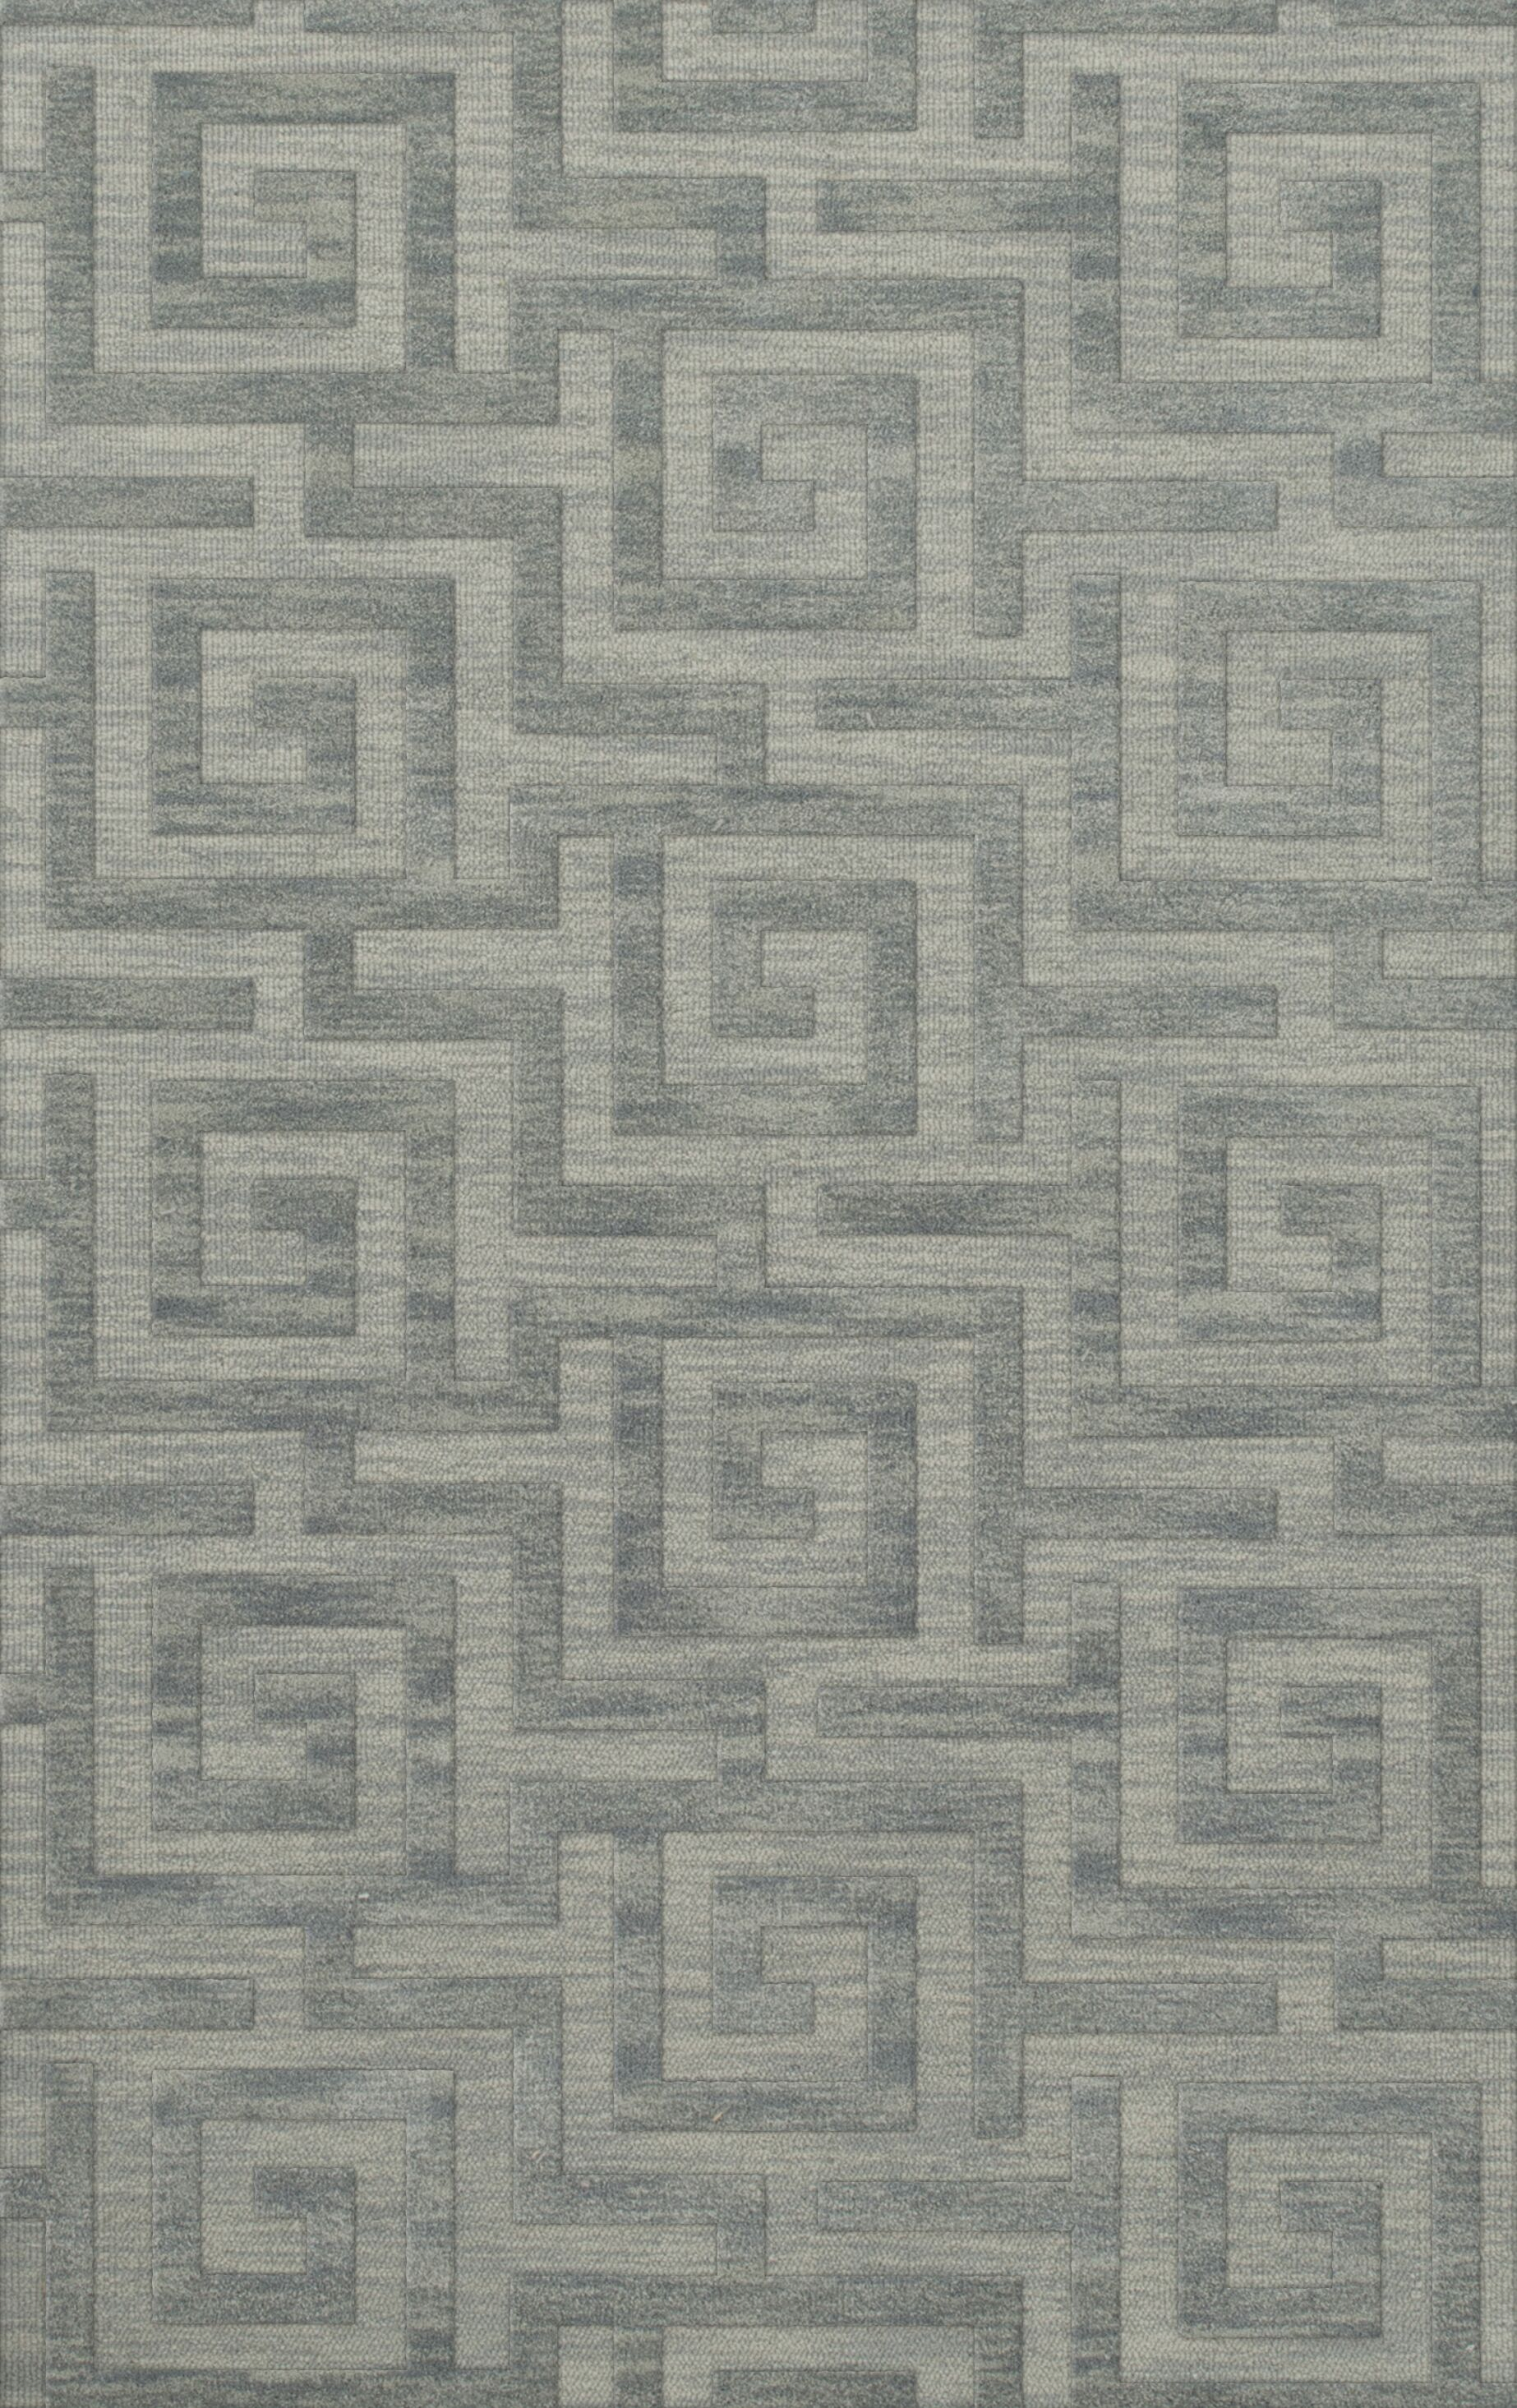 Dover Tufted Wool Sea Glass Area Rug Rug Size: Rectangle 8' x 10'